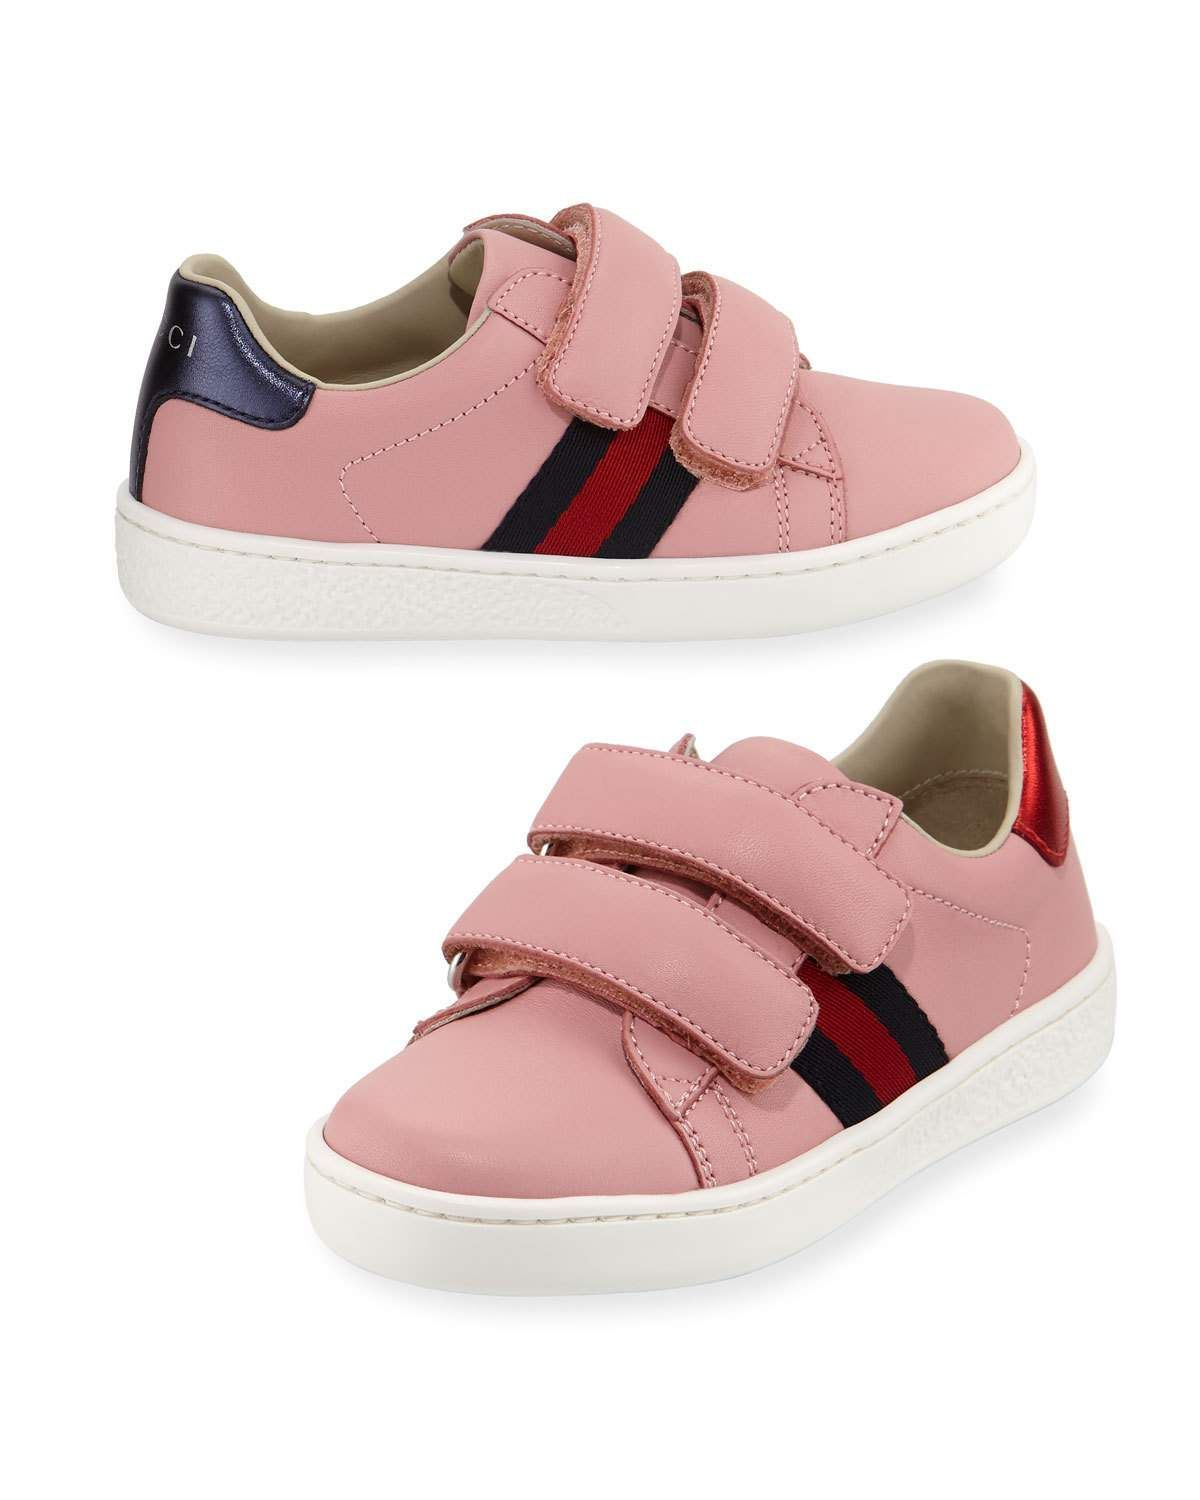 Aceweb gucci new ace web-trim leather sneaker, toddler | products